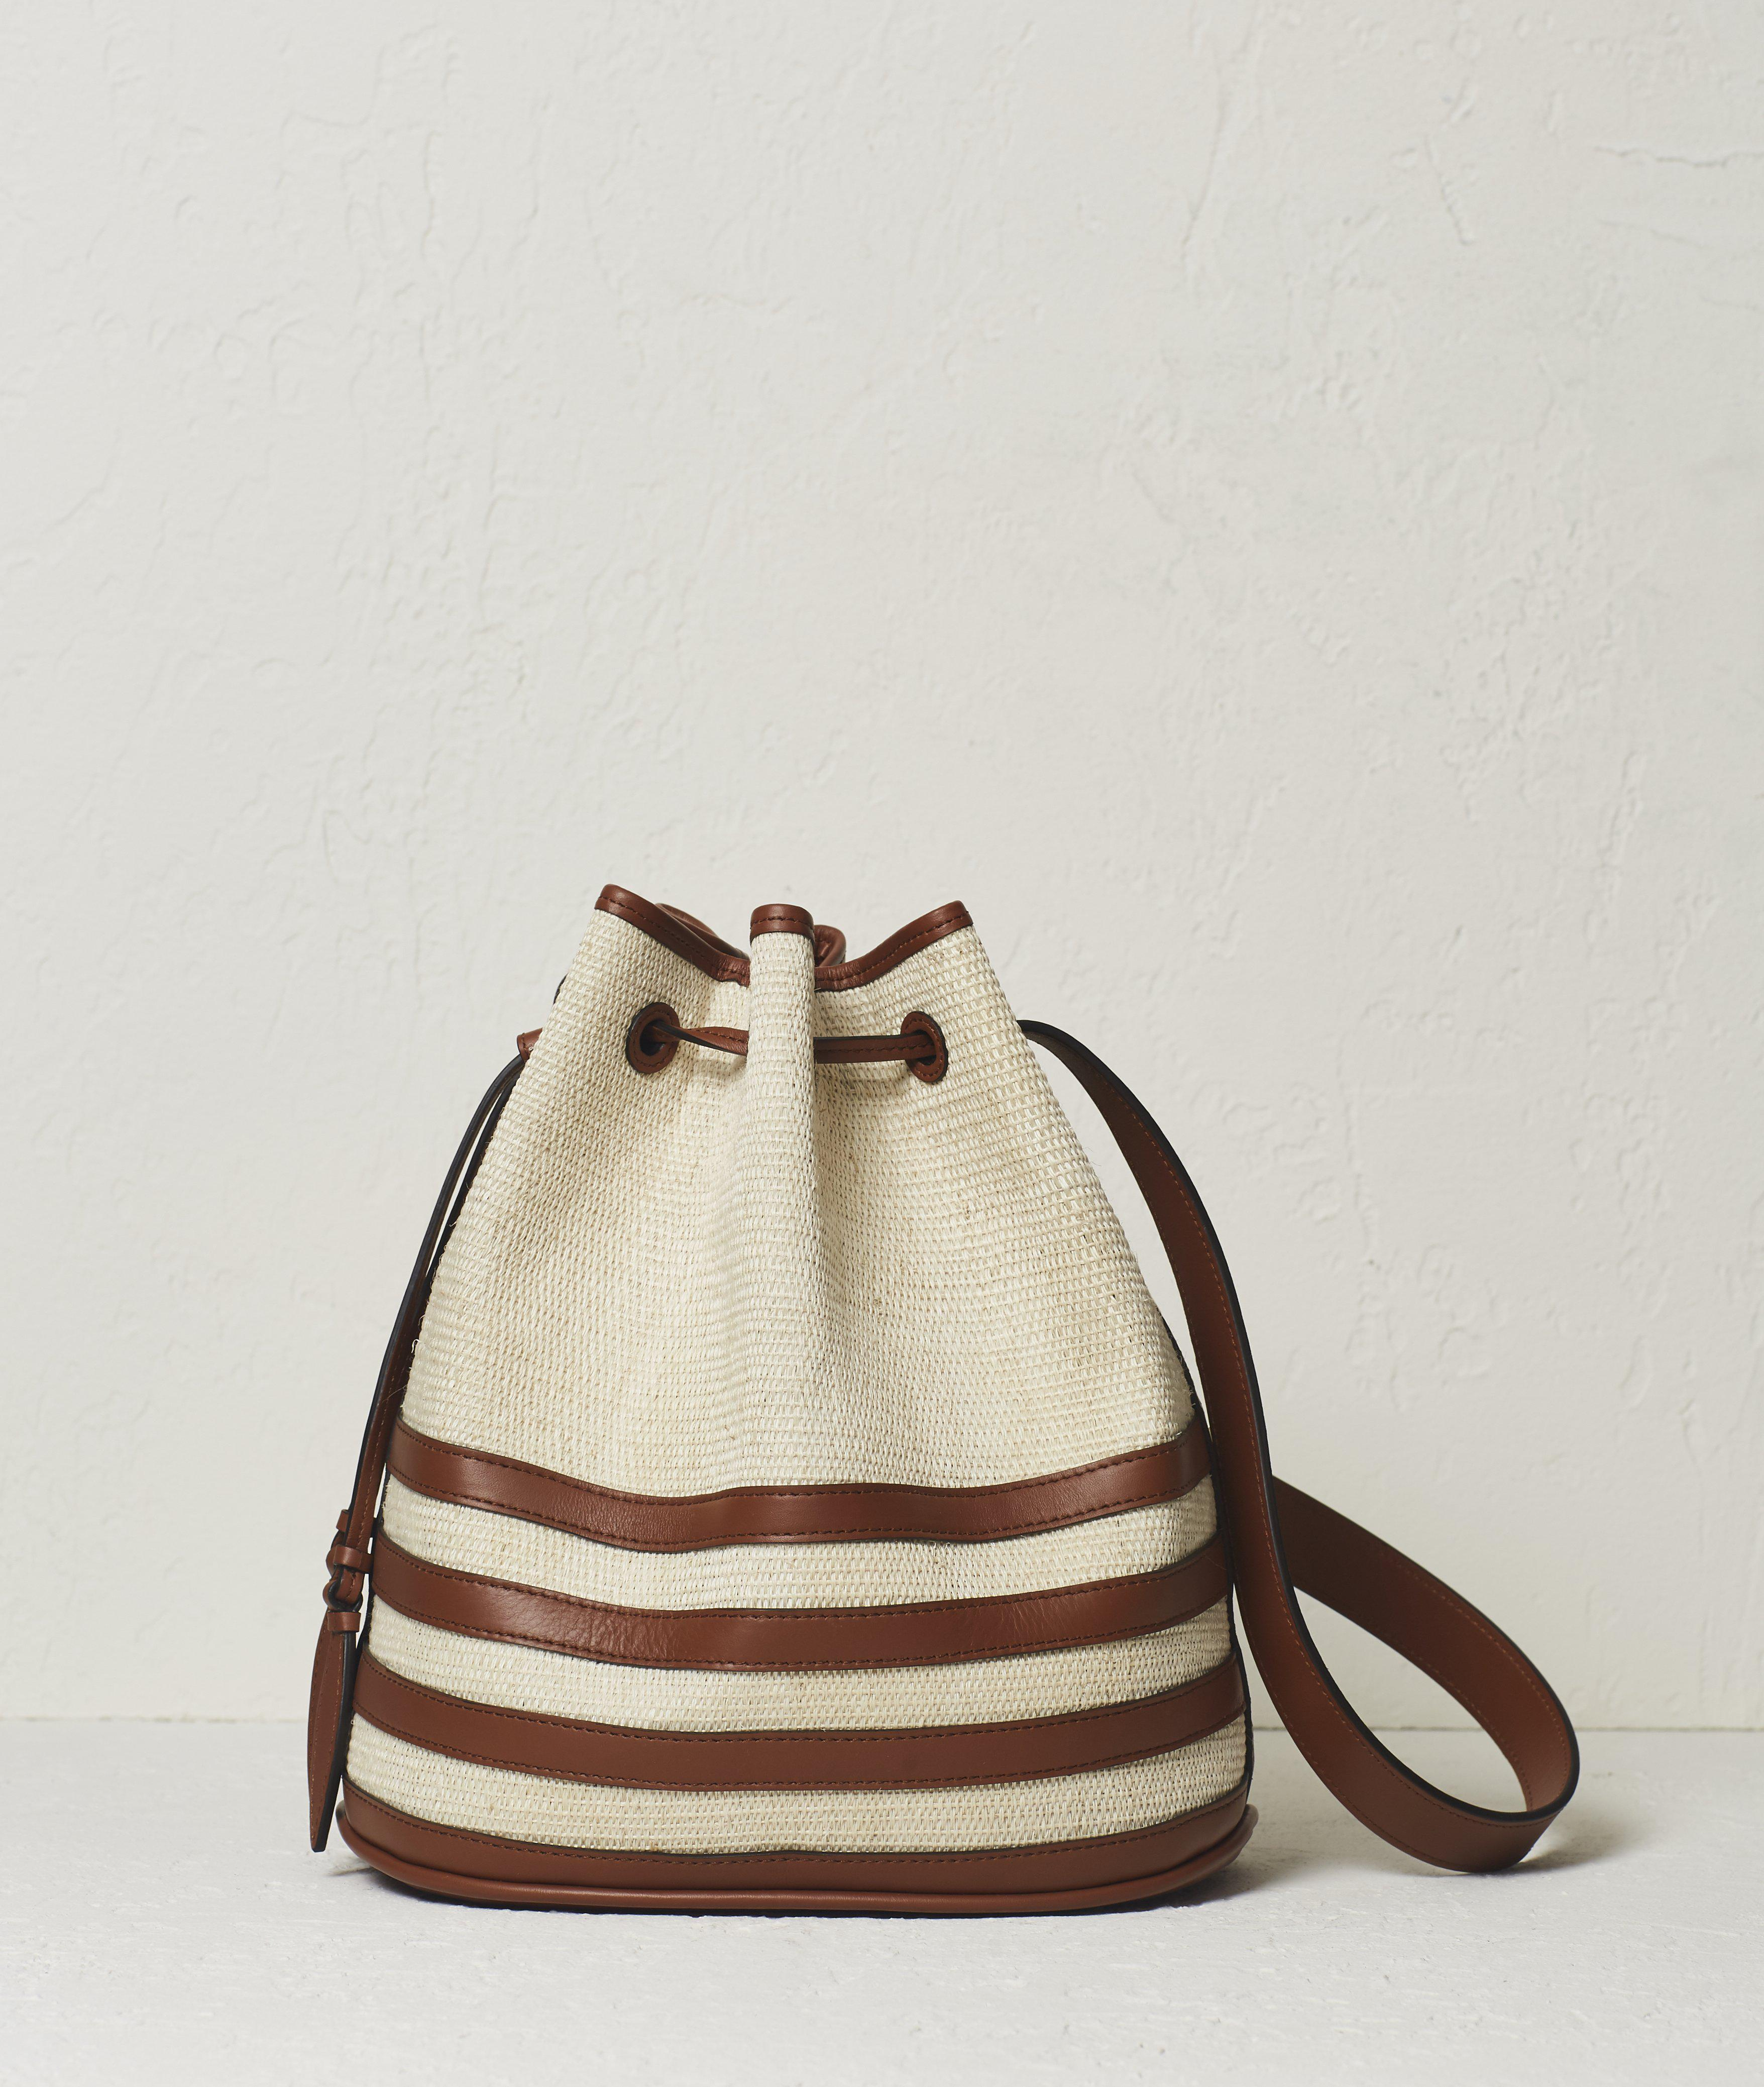 The Drawstring in Woven Iraca Nappa Stripes